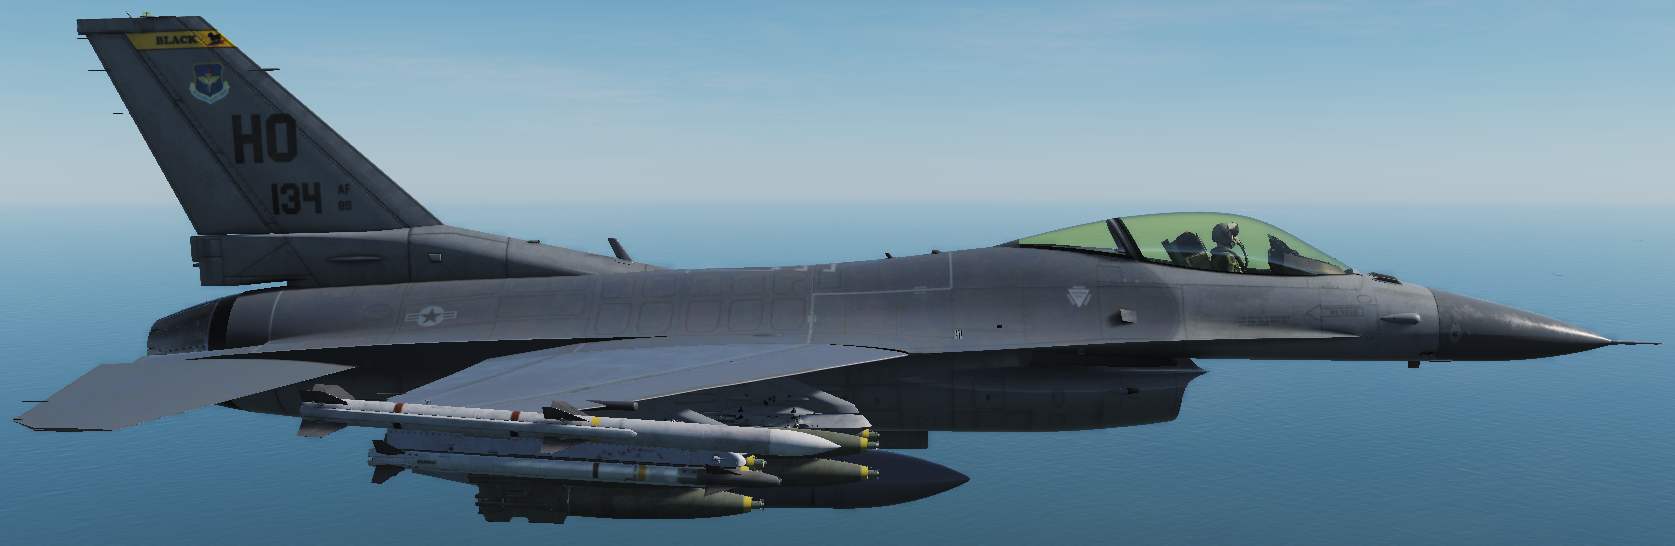 (Updated)F-16C: 8th Fighter Squadron - The Black Sheep